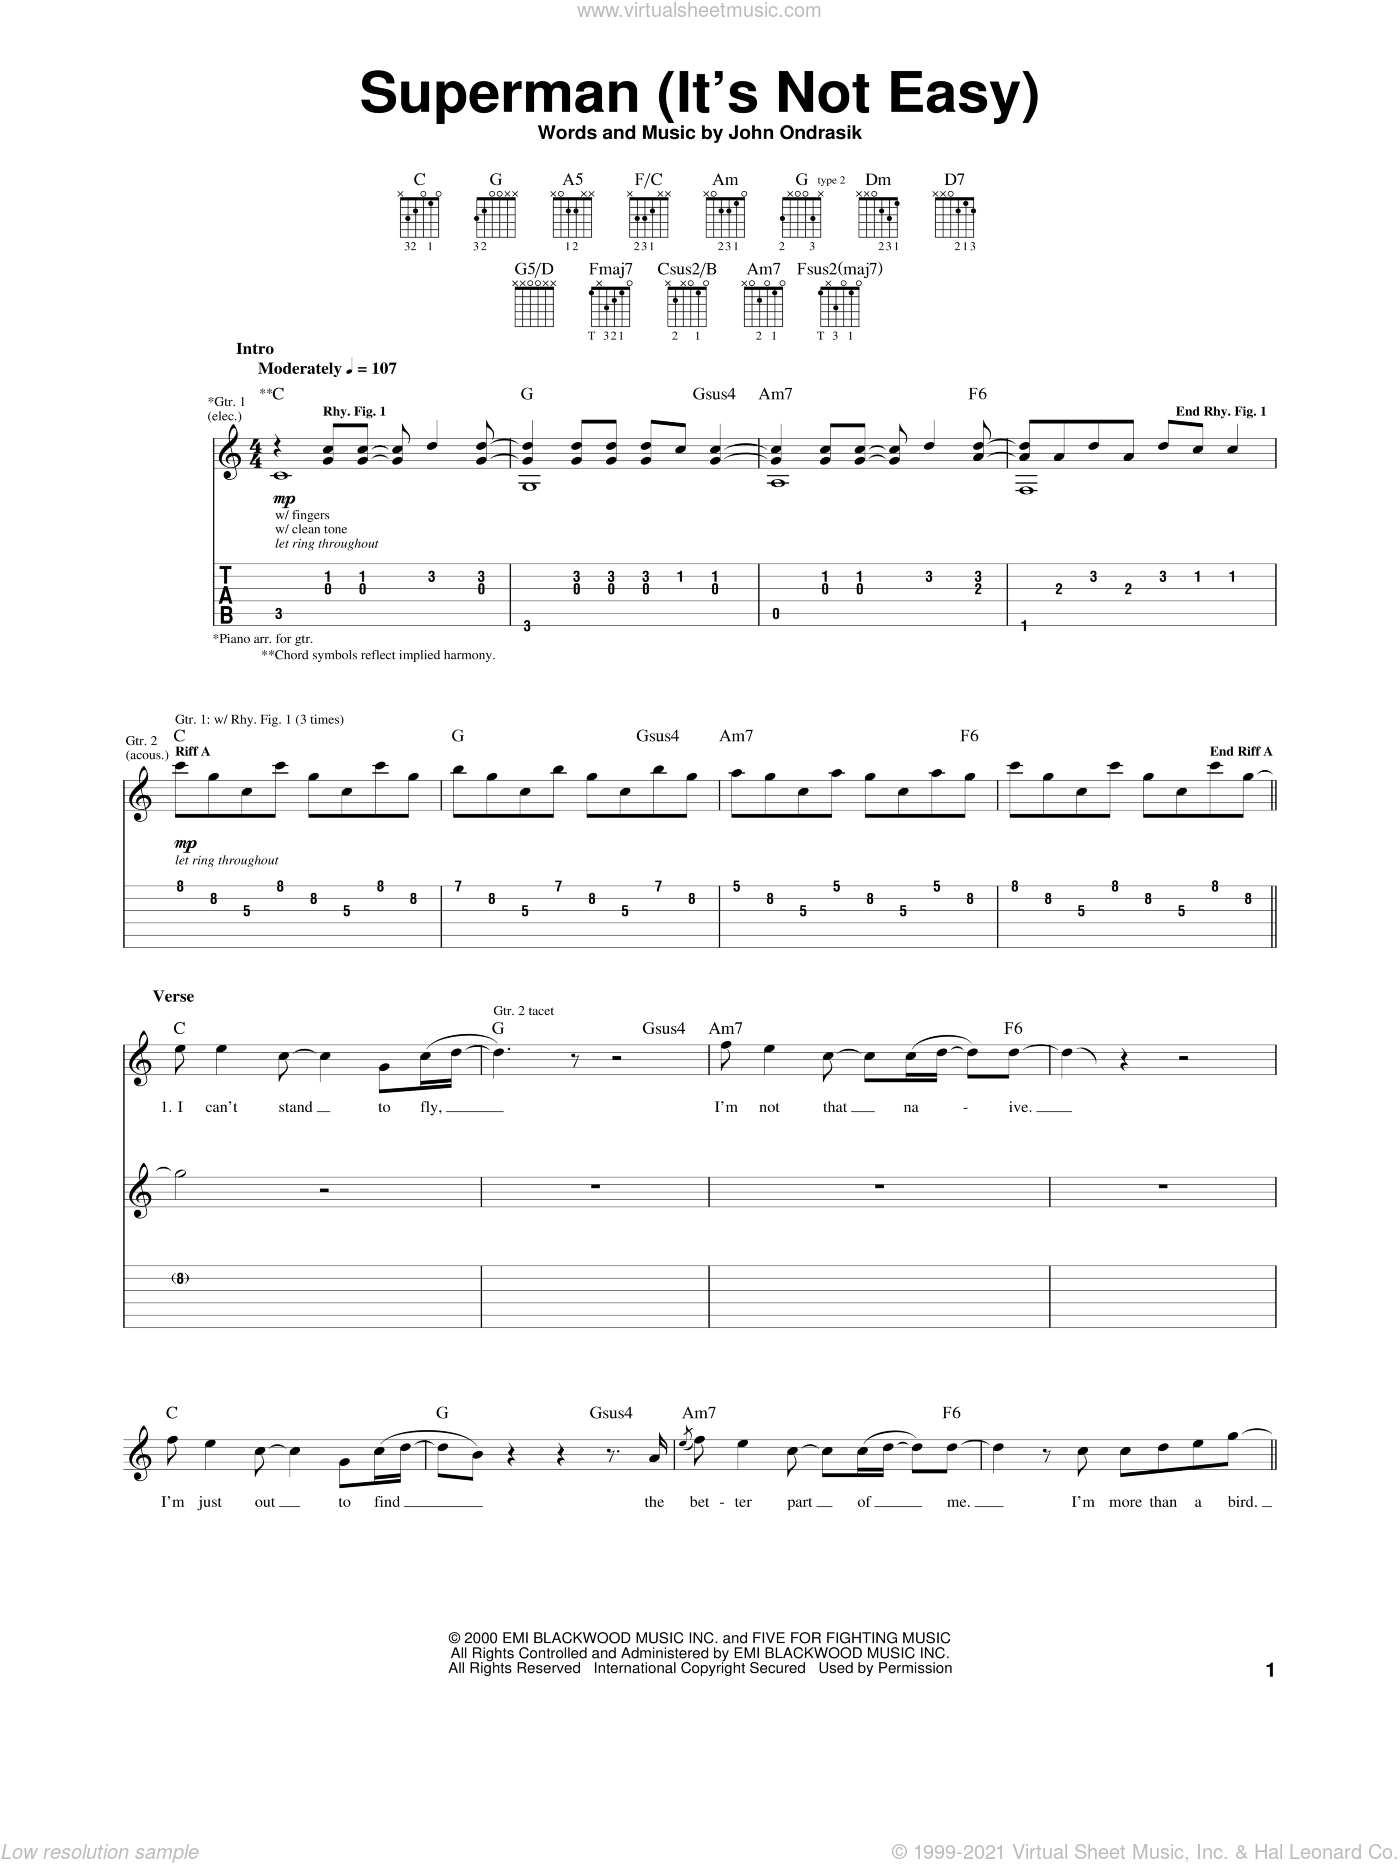 Superman (It's Not Easy) sheet music for guitar (tablature) by John Ondrasik